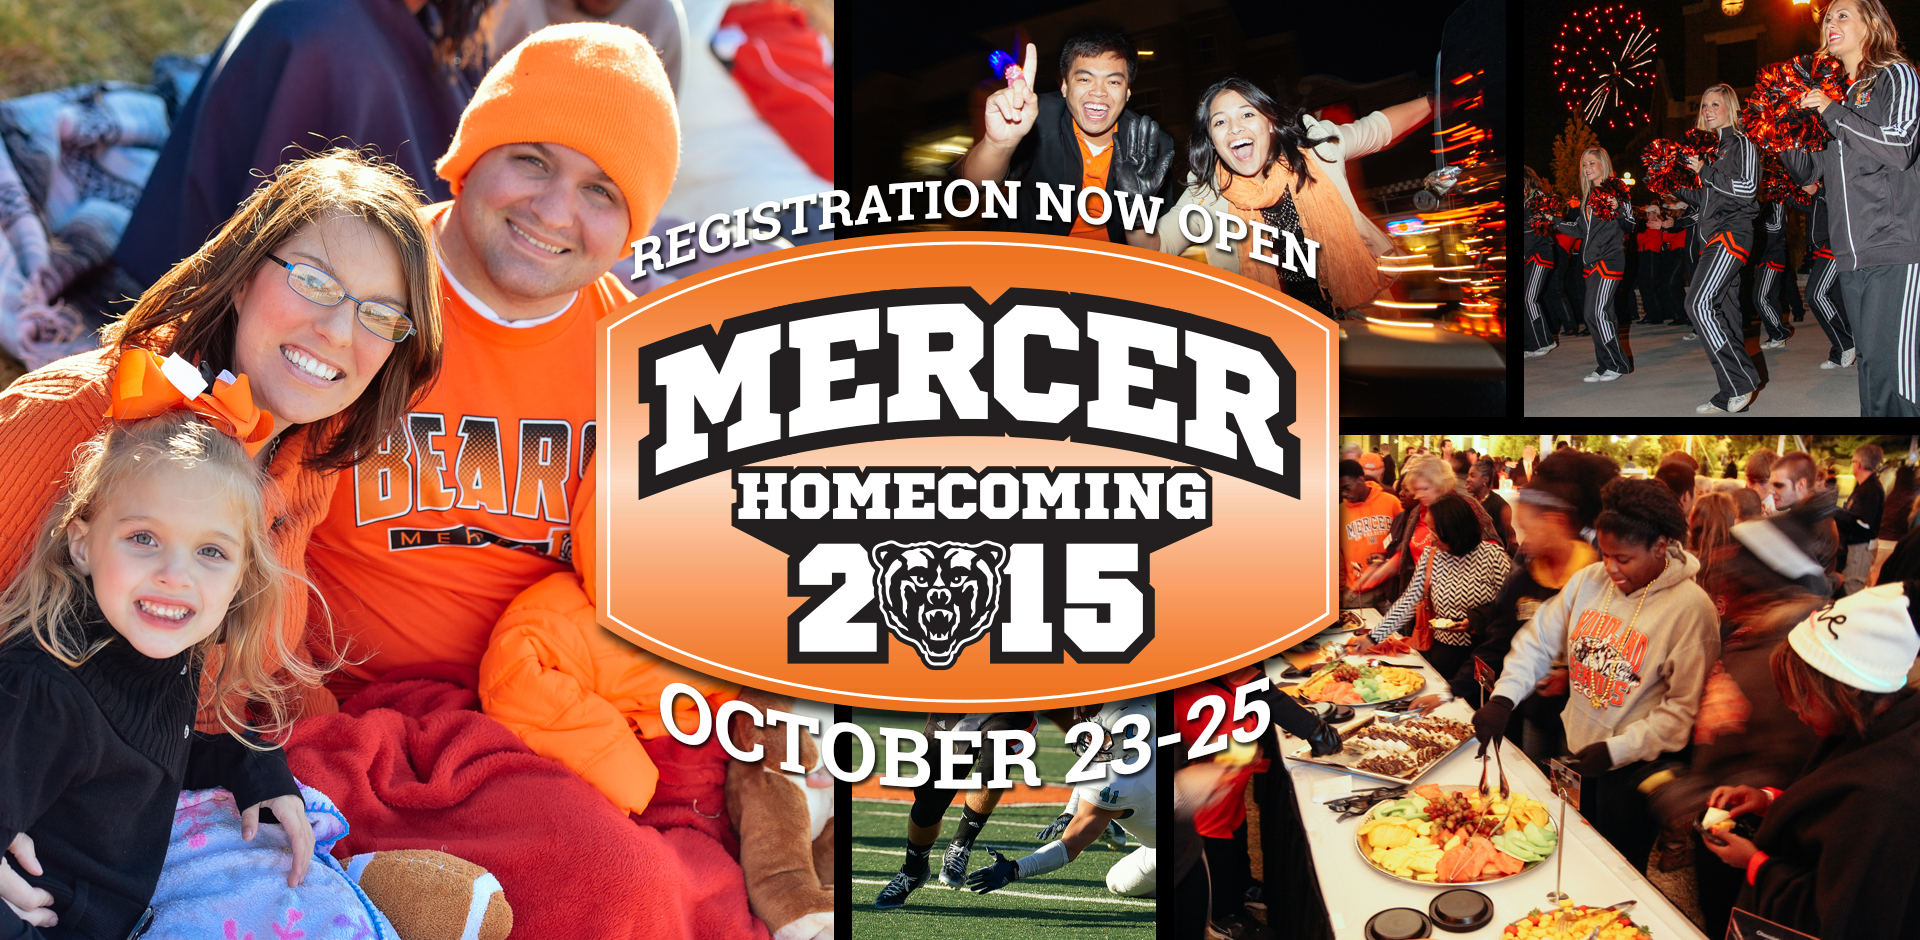 Homecoming Registration Now Open